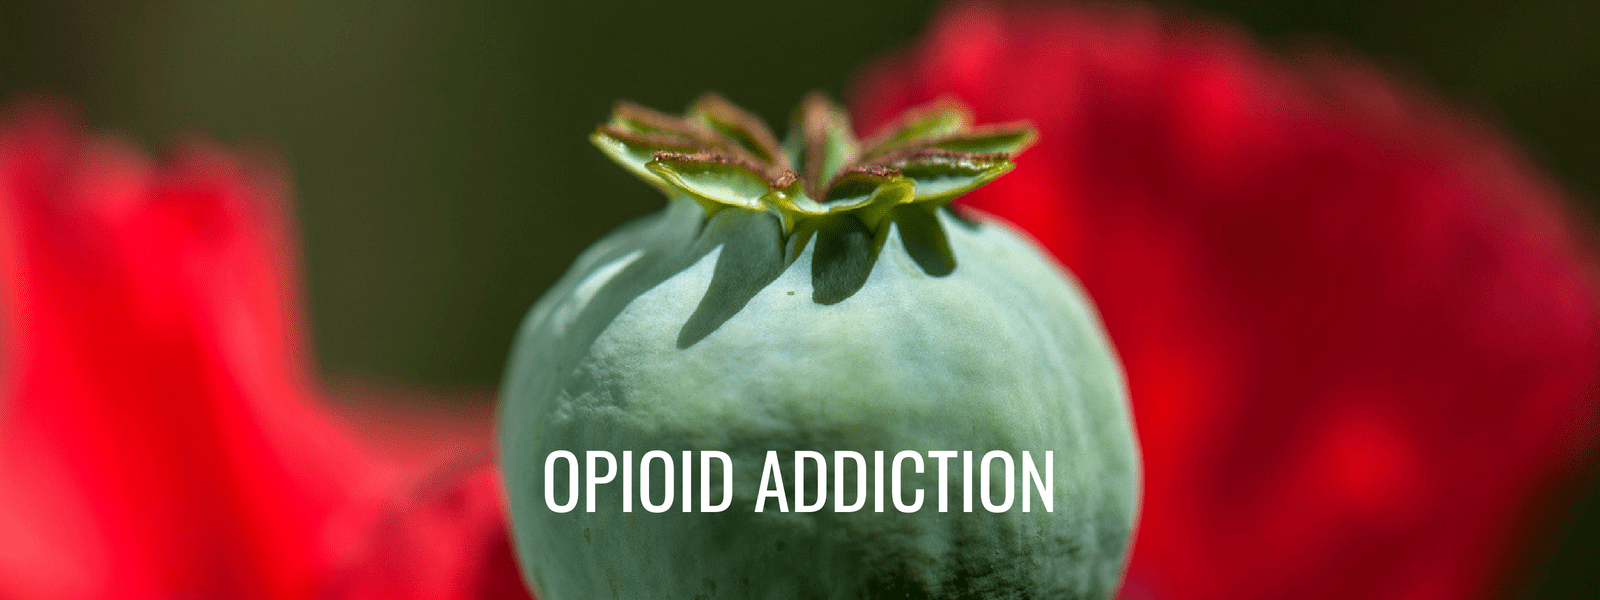 Seattle opiate addiction treatment center - schick shadel hospital - opioidaddiction - poppy plant - opium